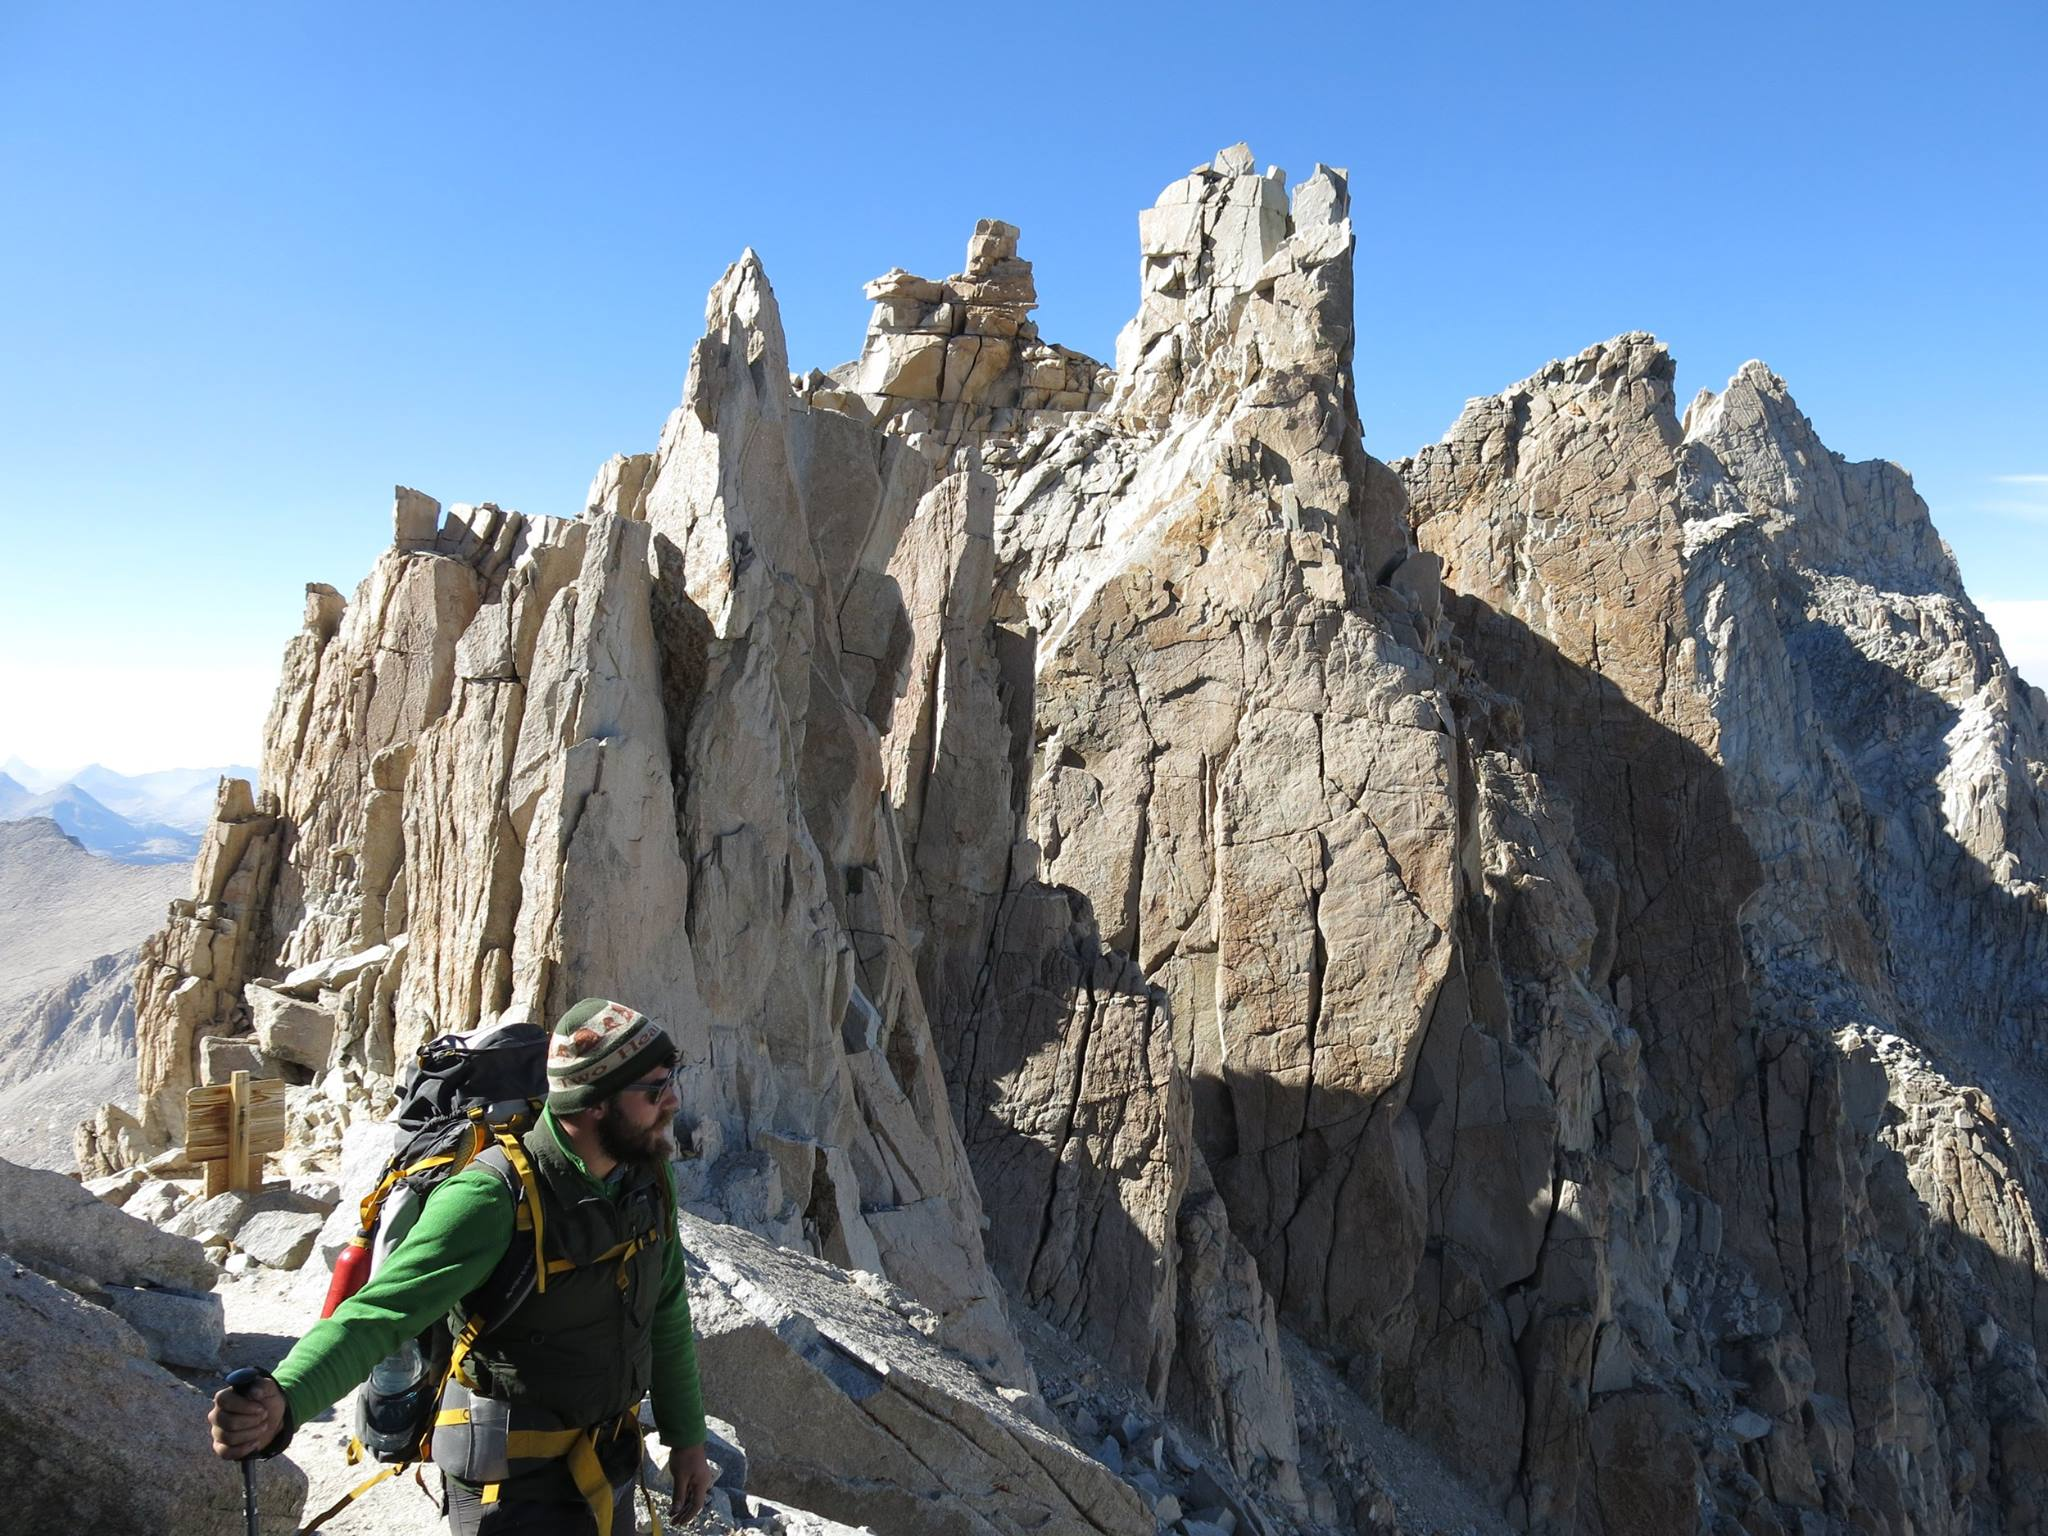 Andrew, wearing his trusty Two Hearted beanie, overlooks a pass high in the Sierra Nevadas.